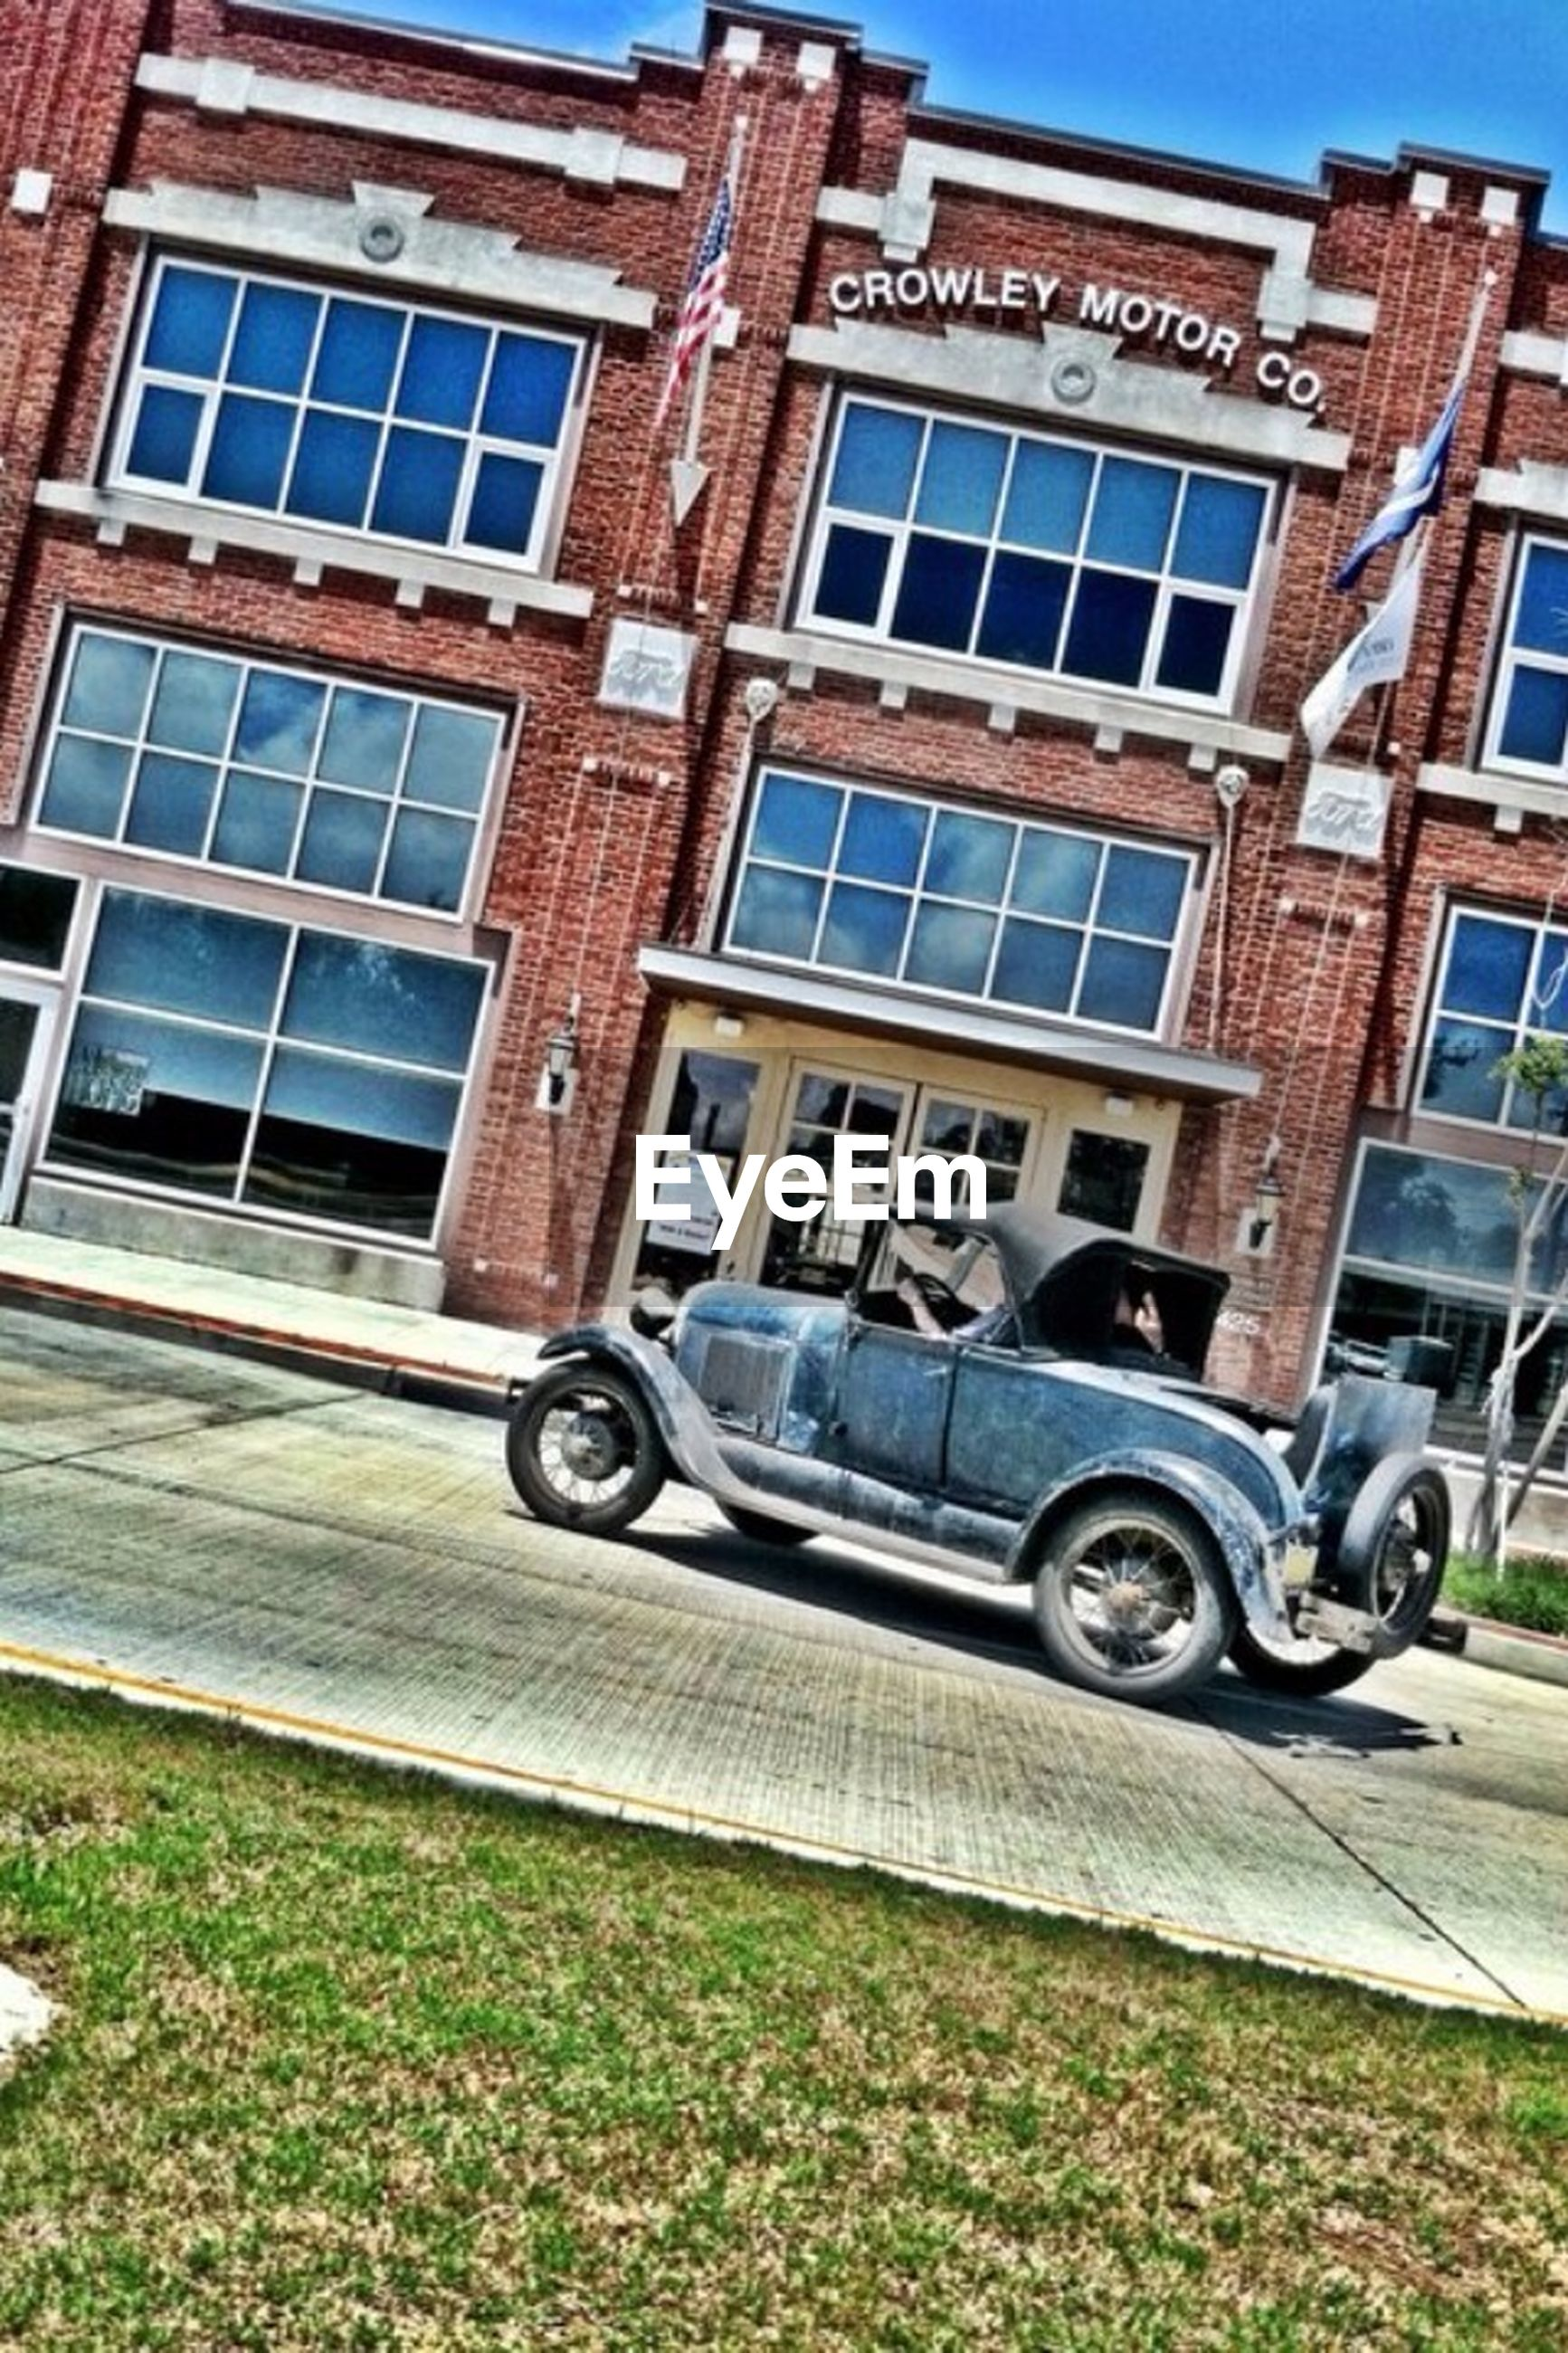 building exterior, land vehicle, transportation, architecture, mode of transport, built structure, bicycle, street, car, parked, stationary, parking, road, city, day, motorcycle, building, window, outdoors, sunlight